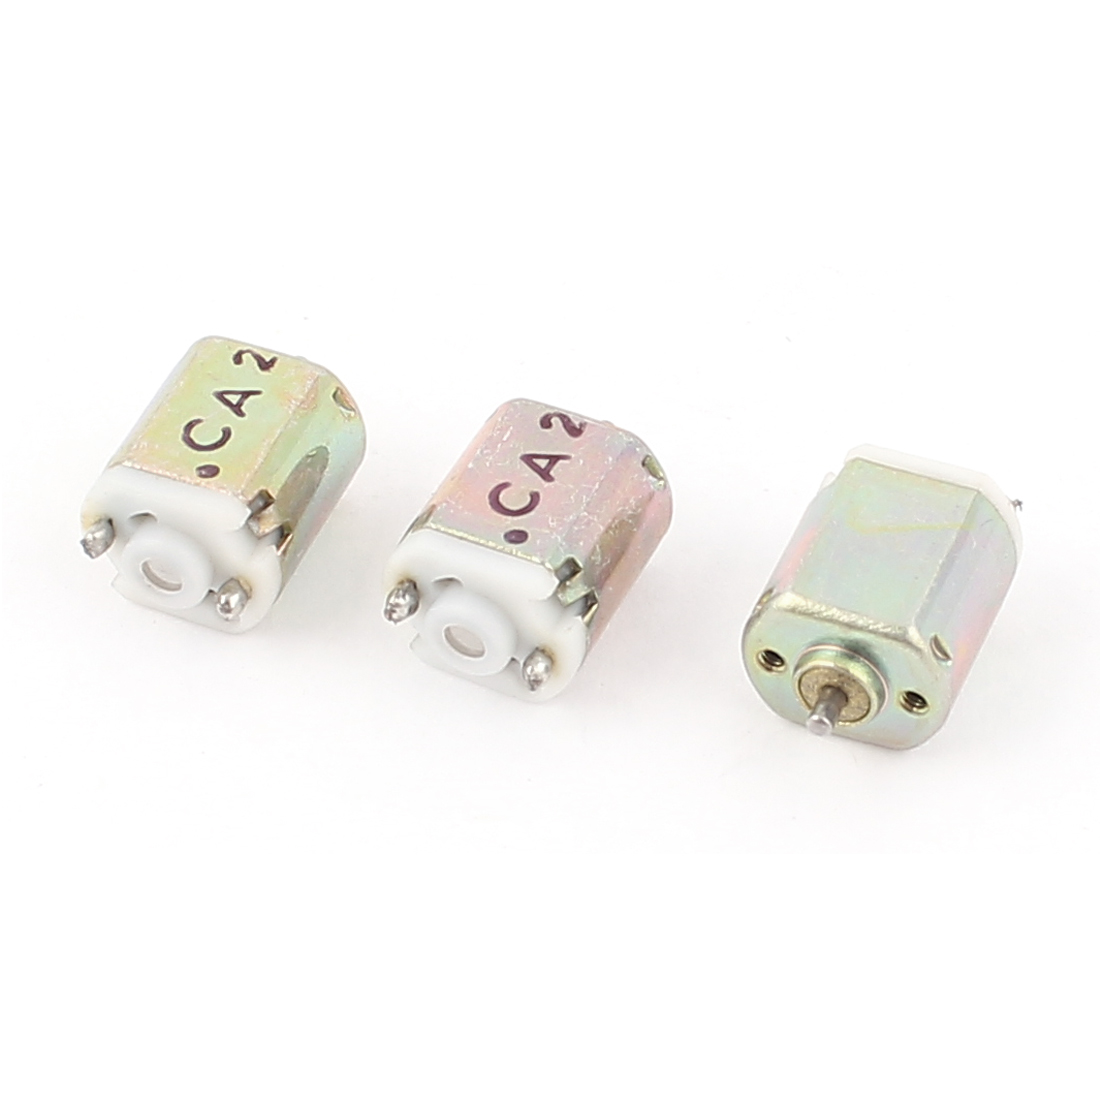 3 Pcs DC 1.5-4.5V 16800RPM High Speed Micro Motor for RC Helicopter